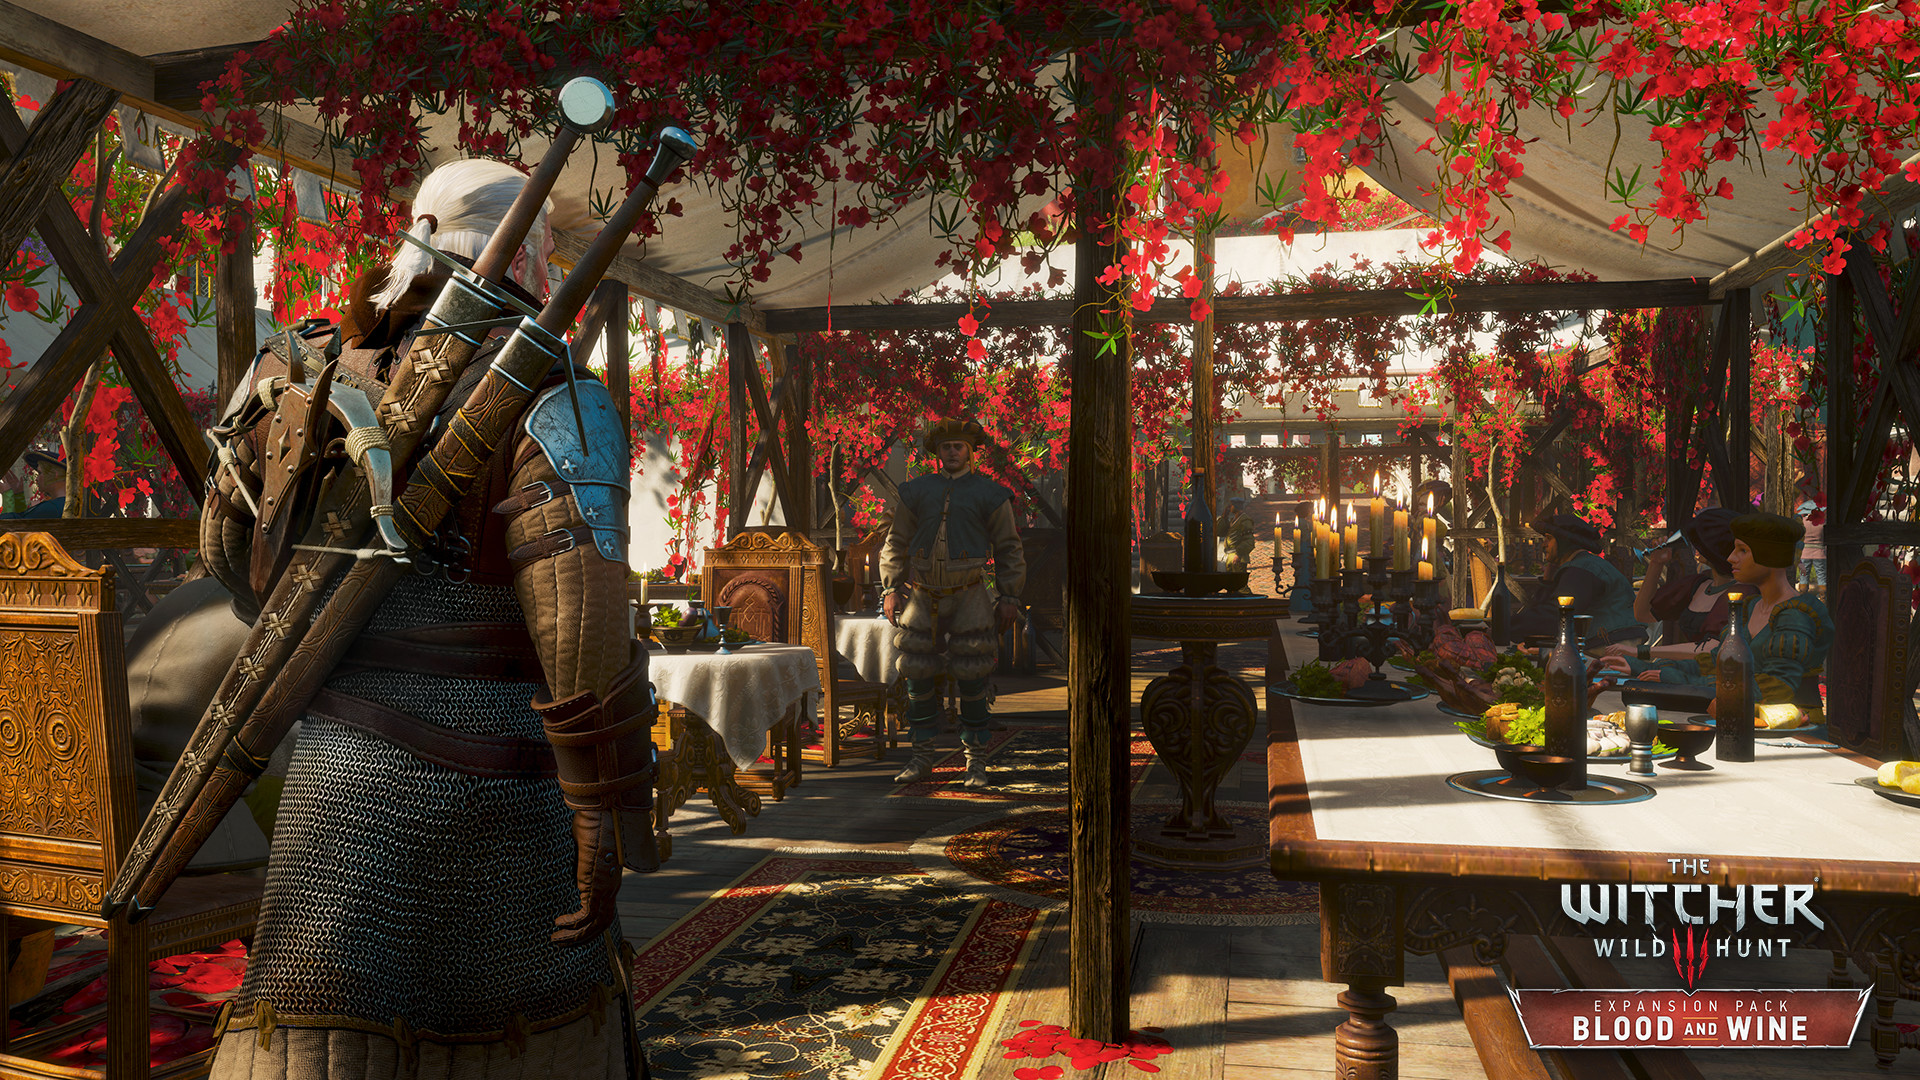 Solo por si se lo perdieron aquí esta el trailer de lanzamiento de The Witcher 3: Wild Hunt - Blood and Wine